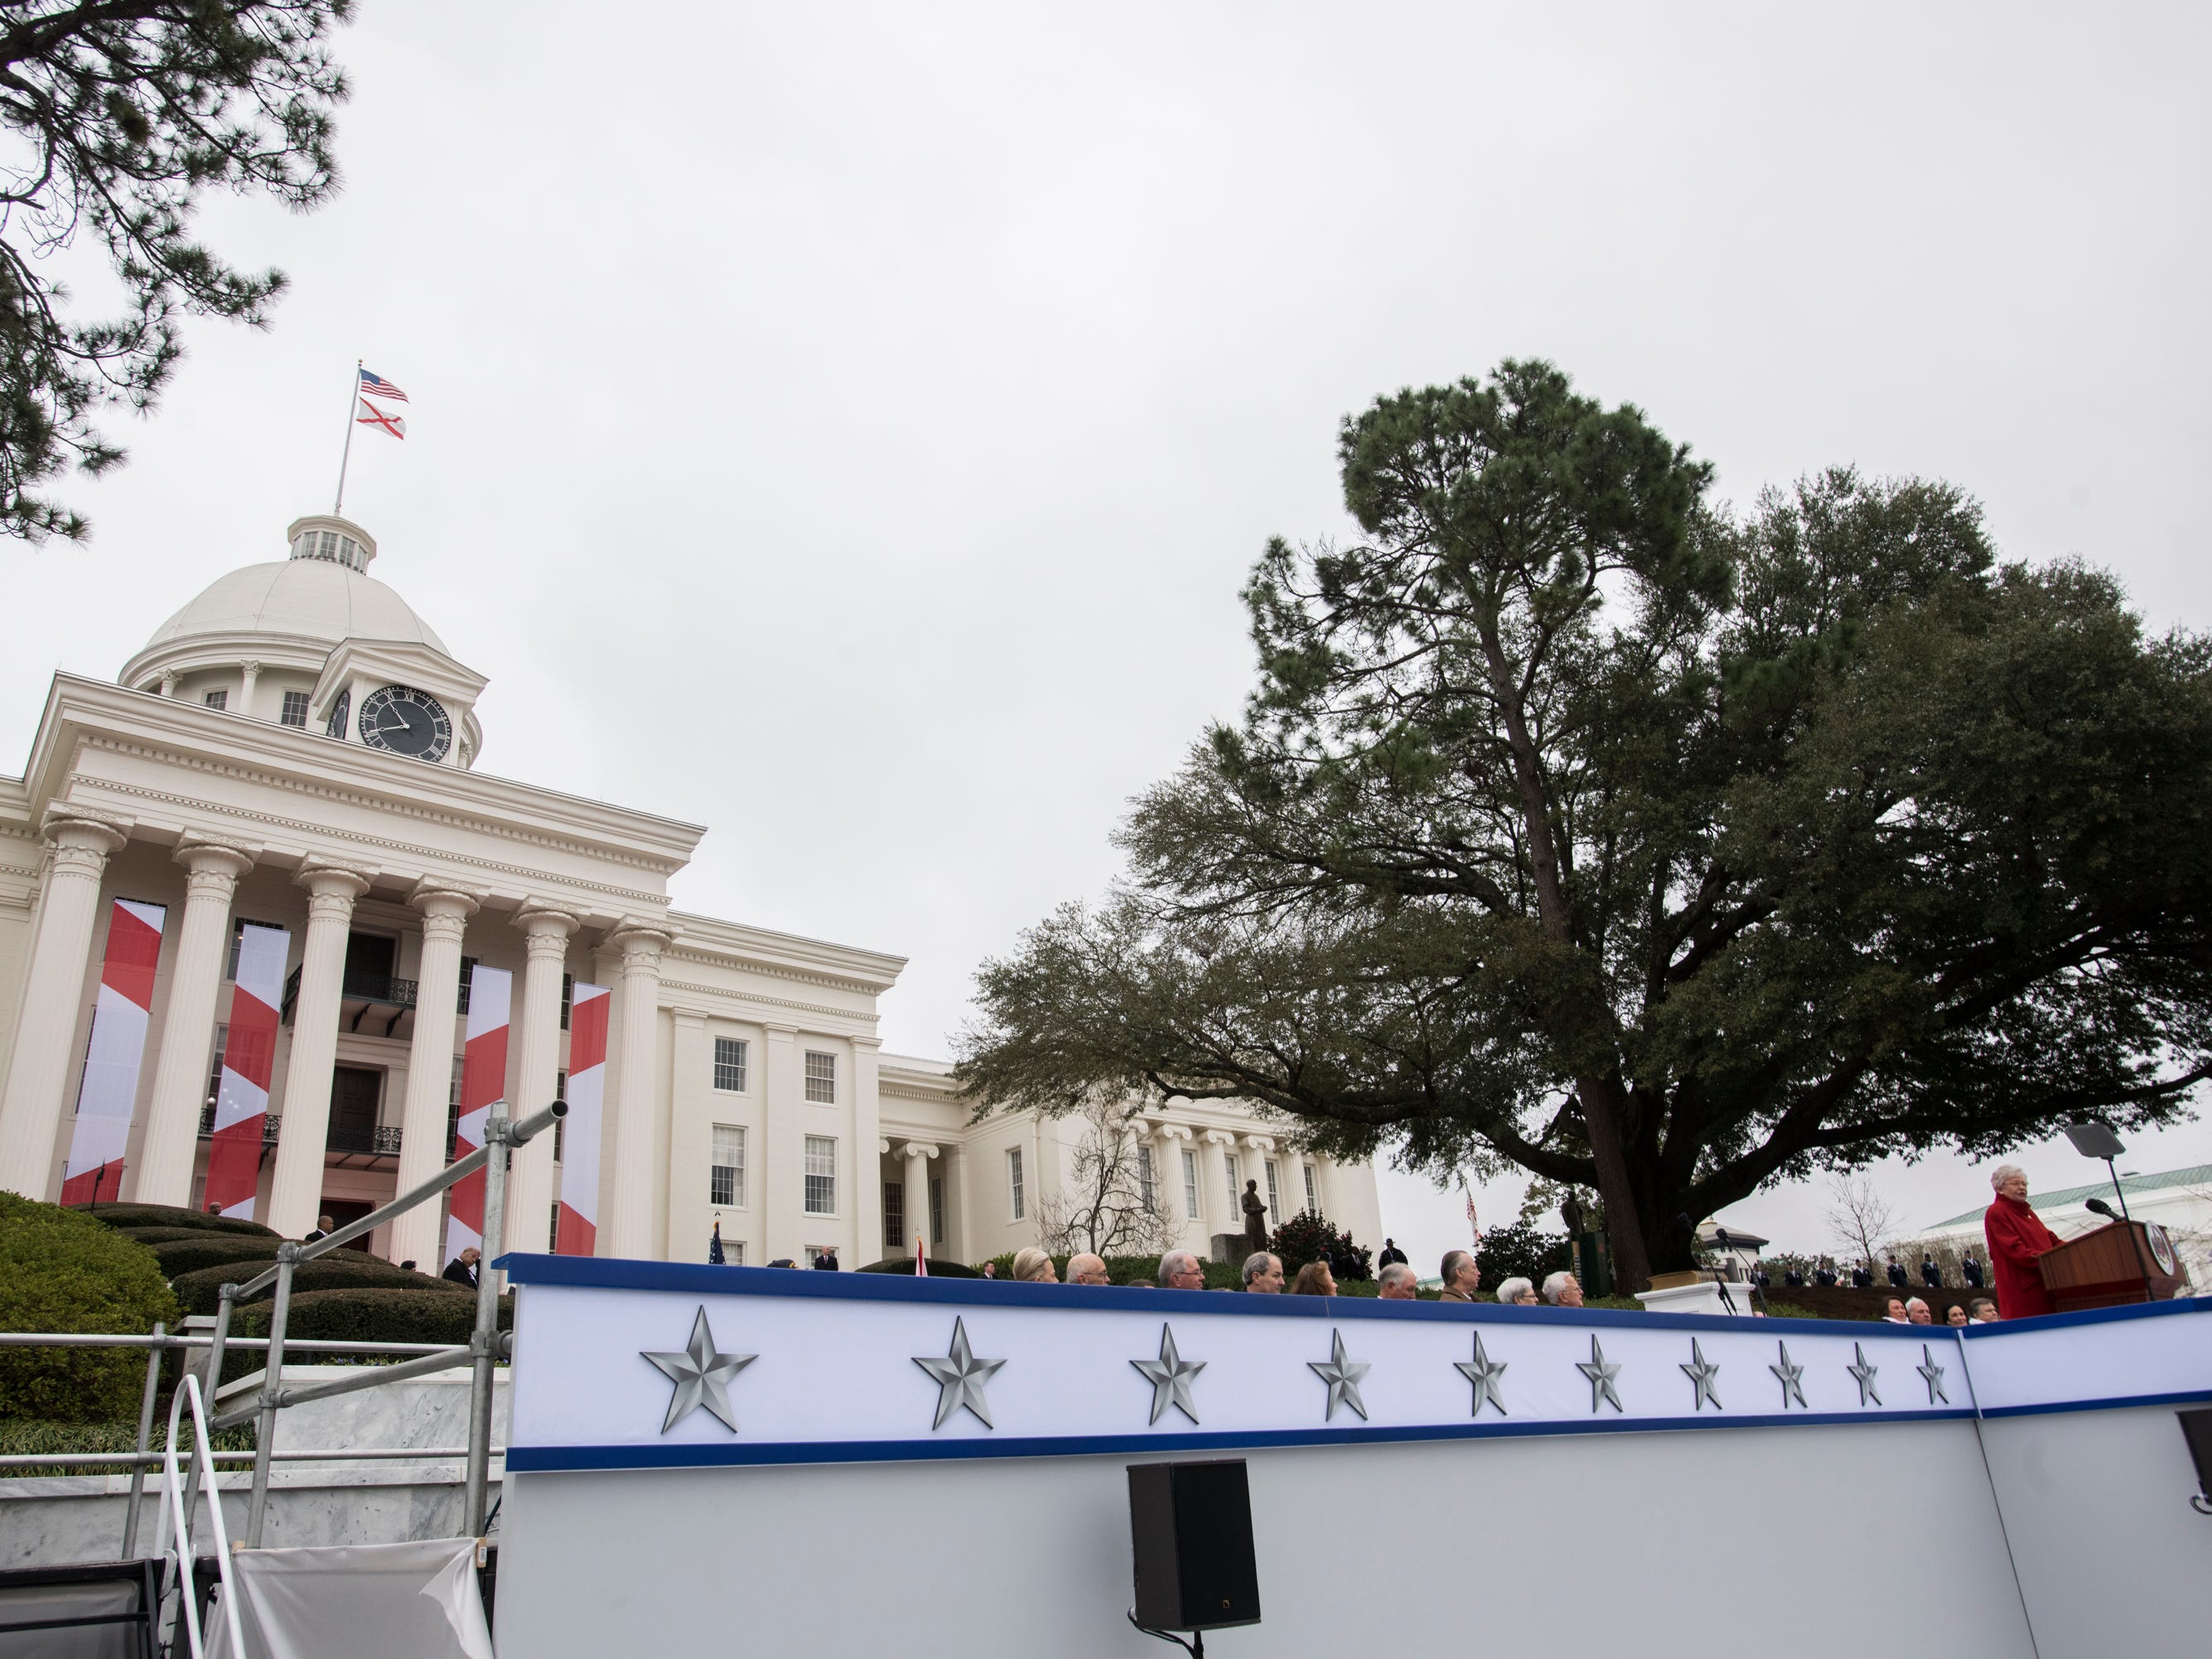 Alabama Gov. Kay Ivey speaks during Inauguration  Day on the steps of the Alabama State Capitol in Montgomery, Ala., on Monday, Jan. 14, 2019.